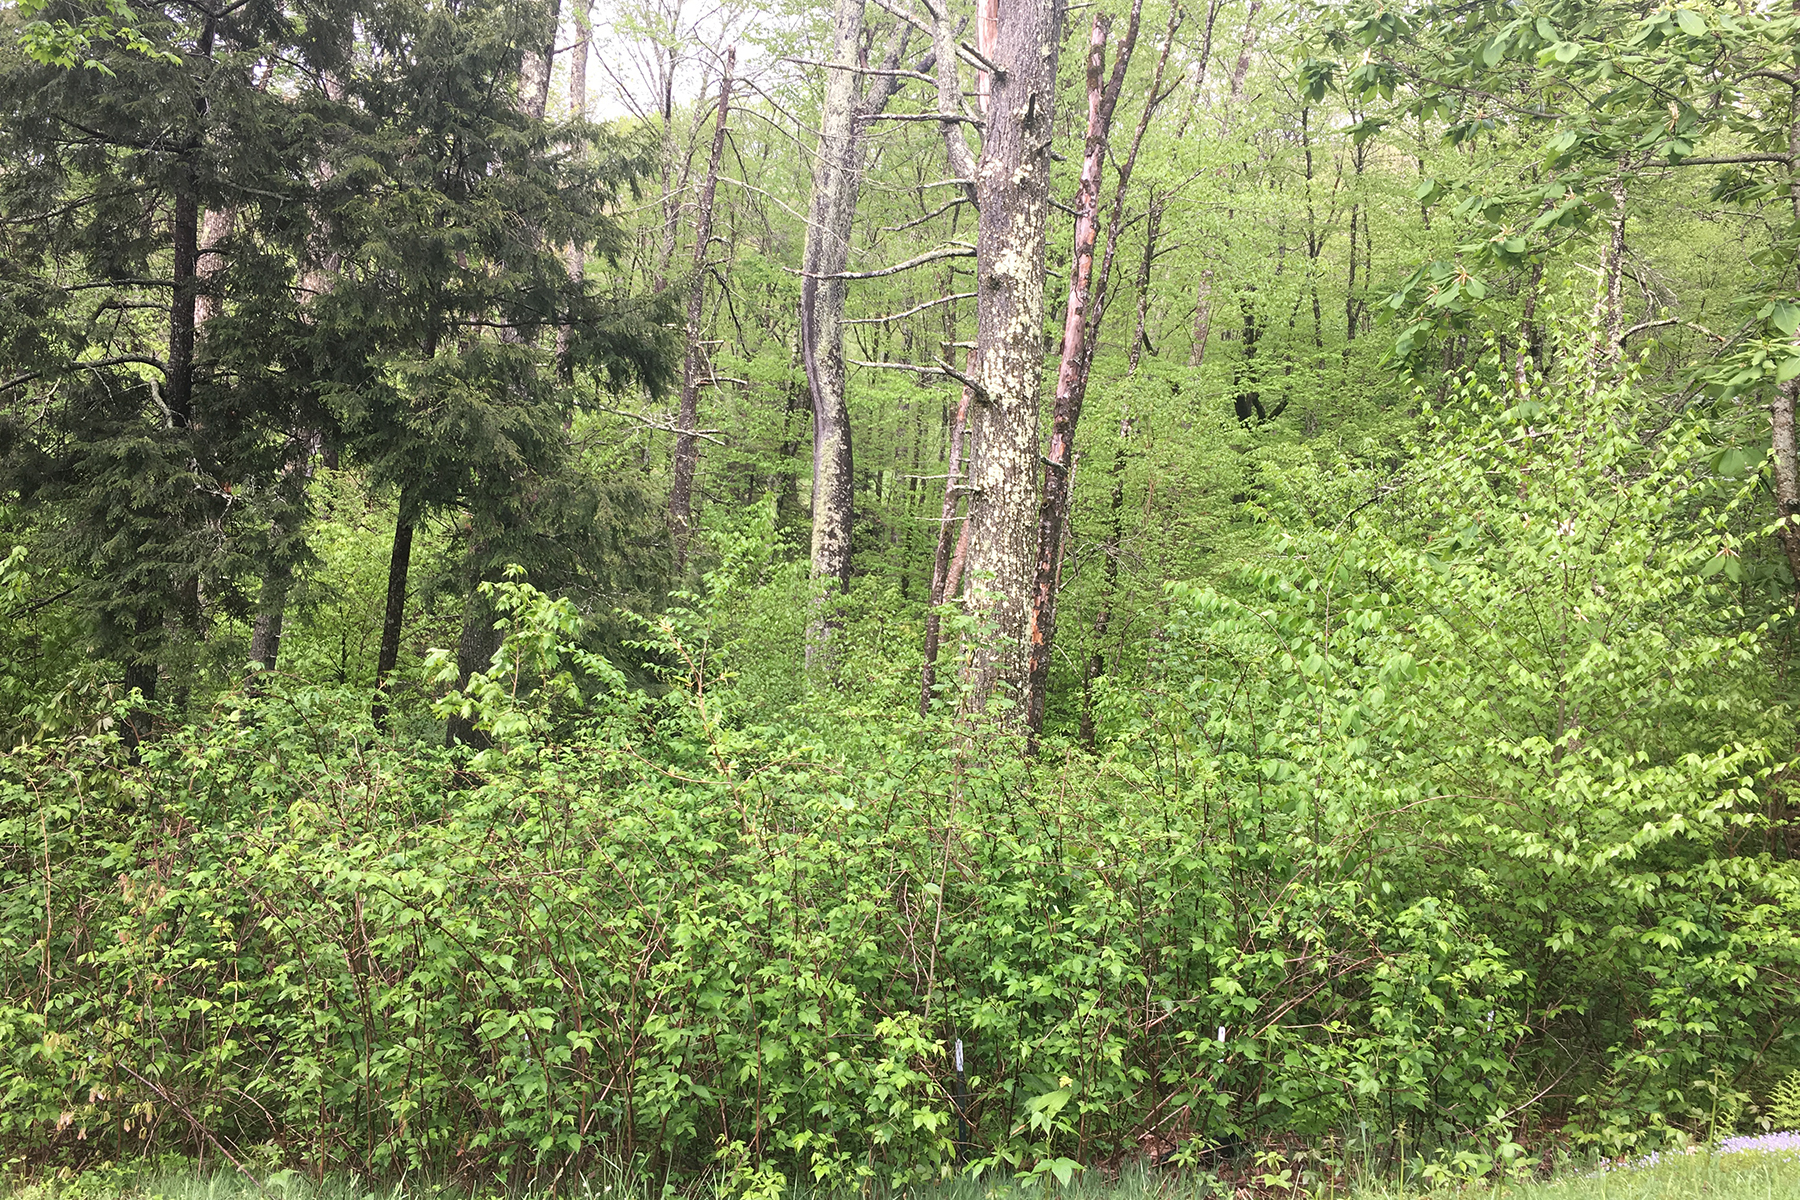 Land for Sale at LINVILLE - THE VILLAGE AT GRANDFATHER Lot 24 Linville River Ln Linville, North Carolina 28646 United States